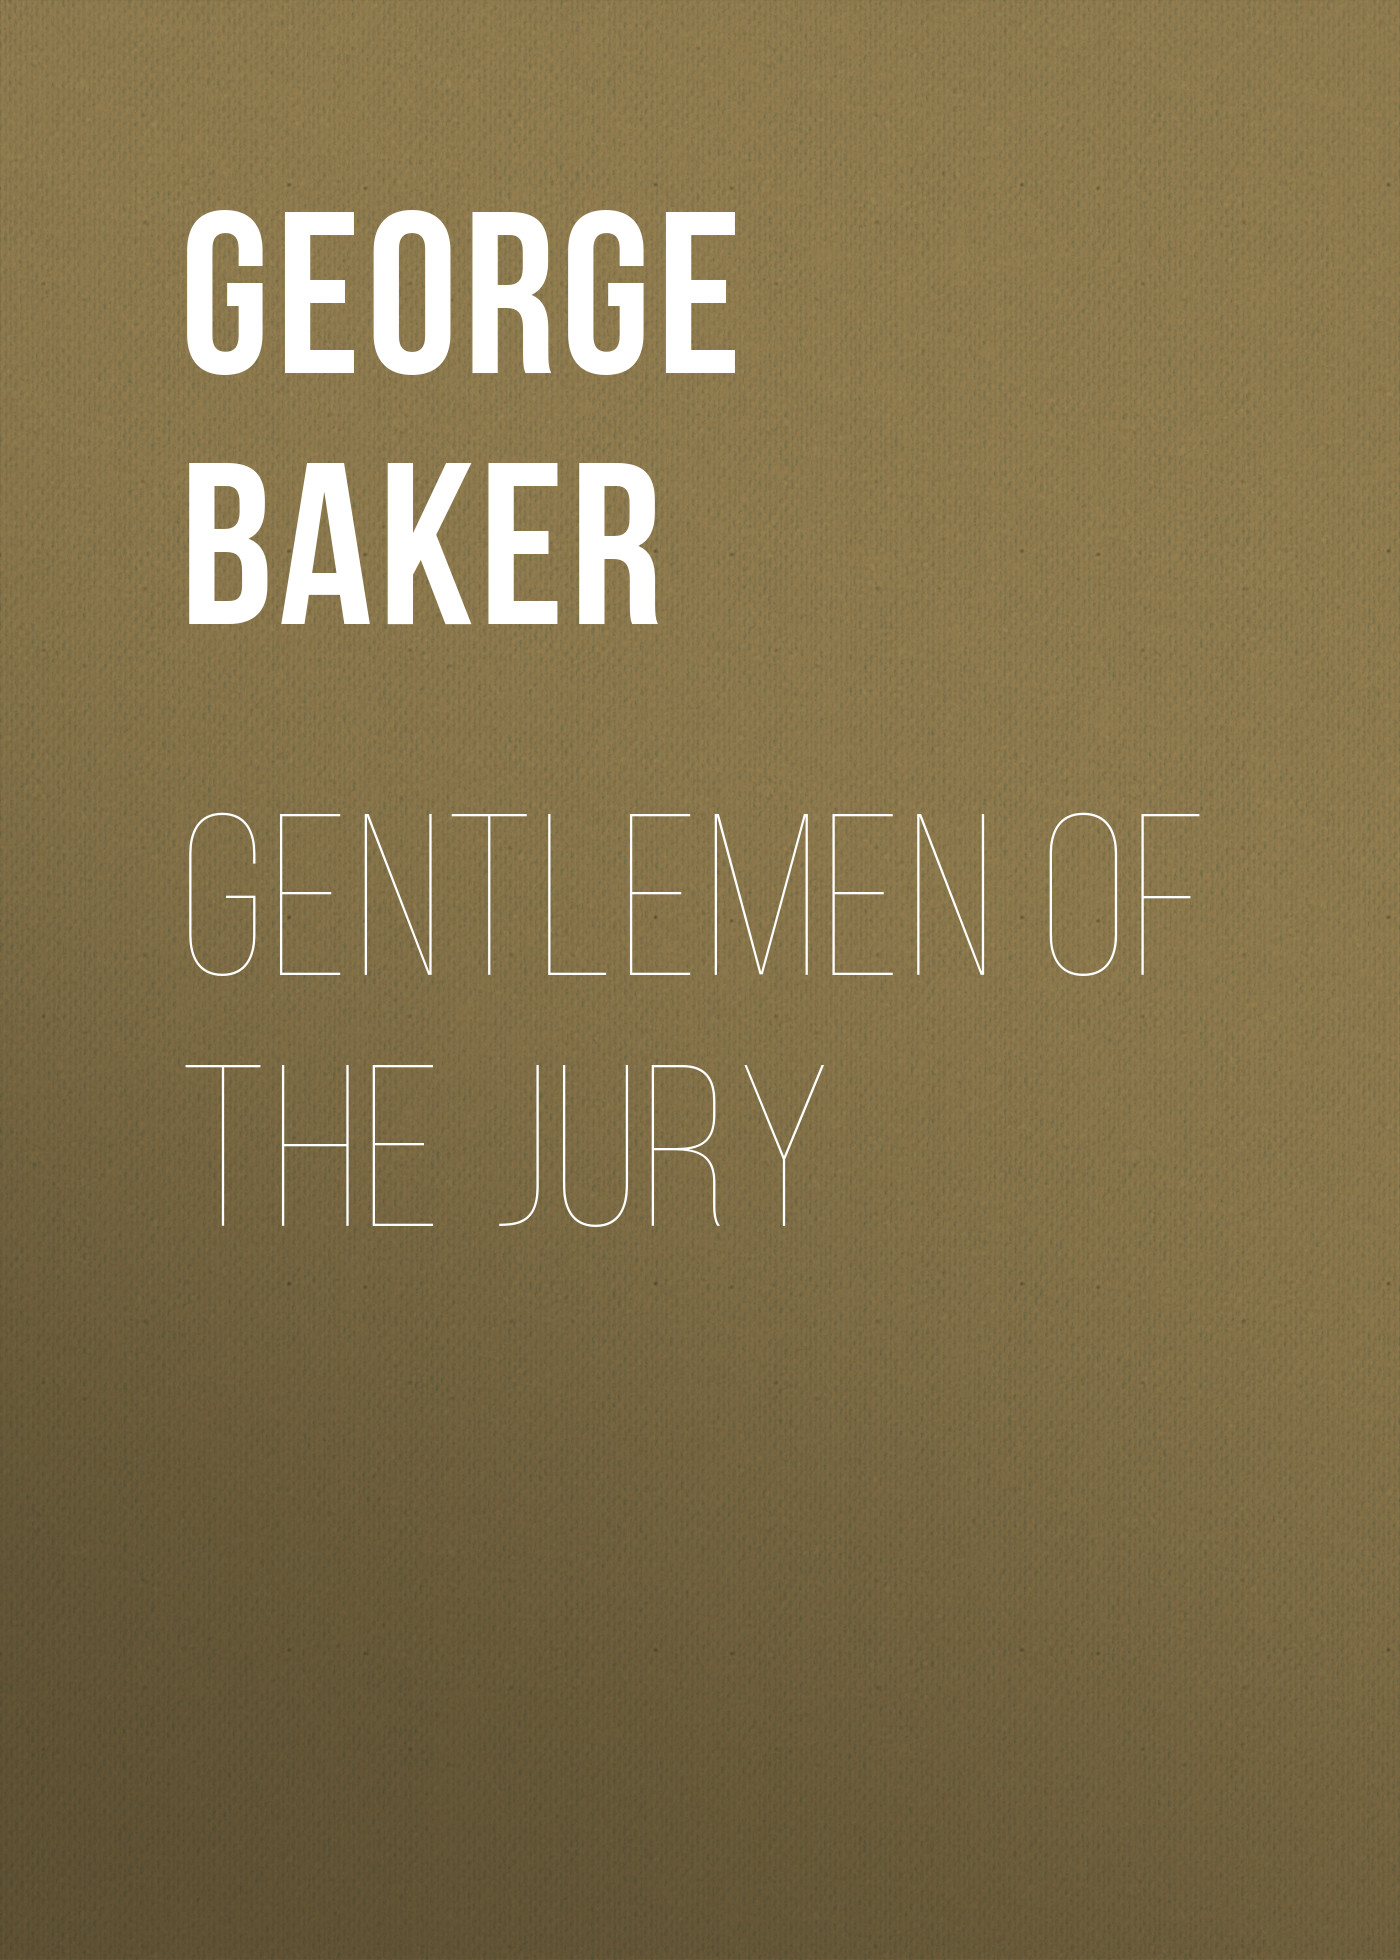 Baker George Melville Gentlemen of the Jury the artful baker